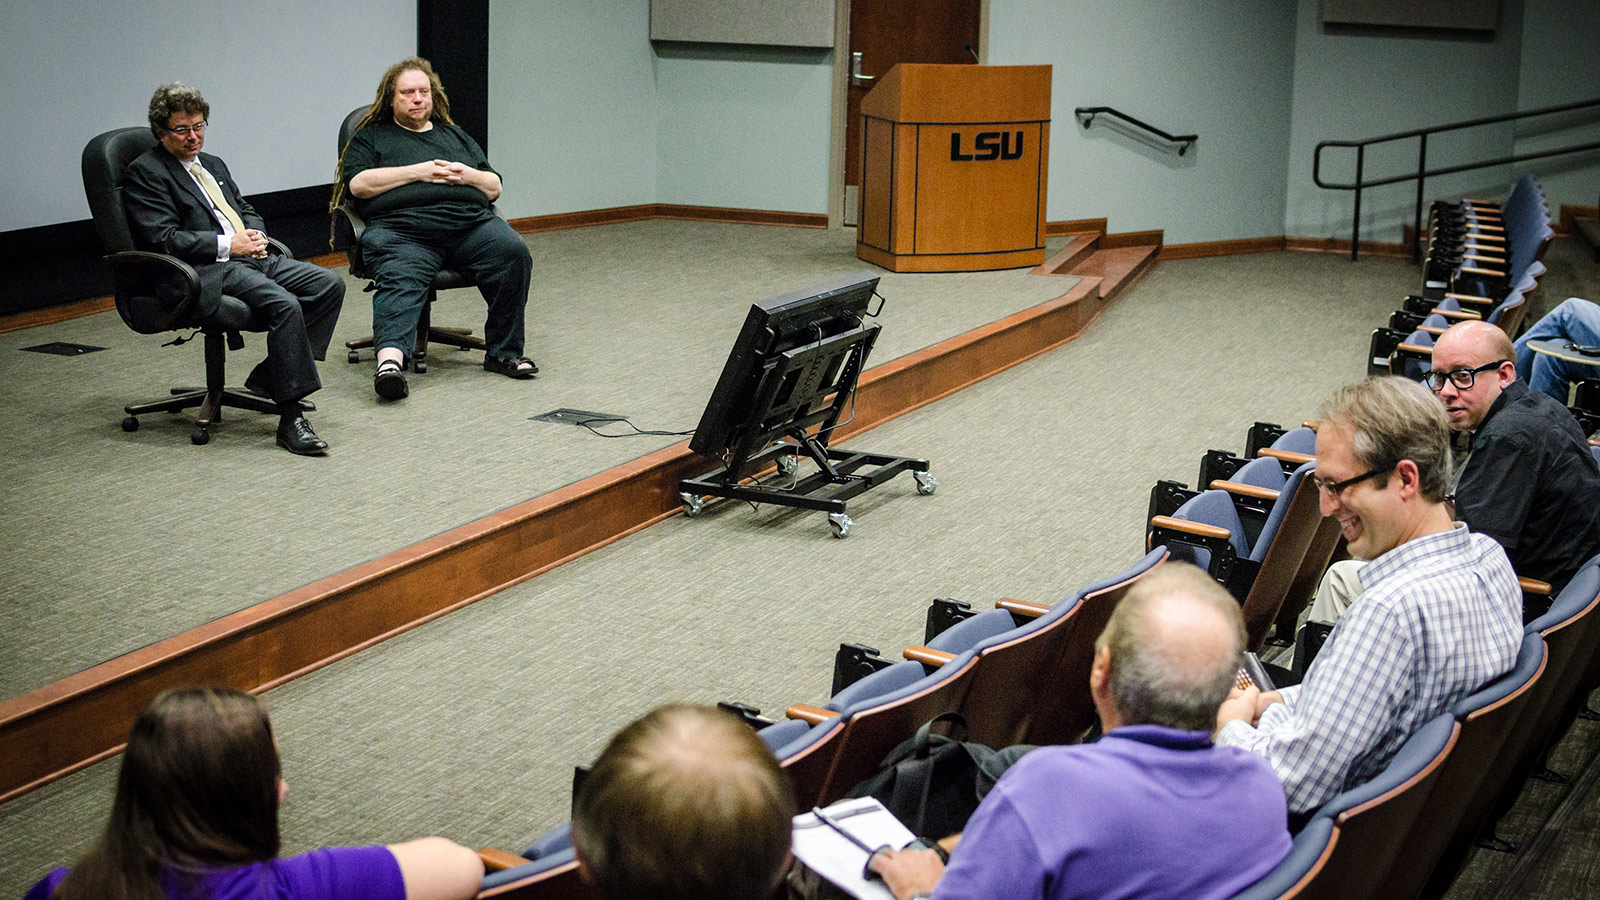 Dr. Stephen Beck (L) hosts a Q&A session with scientist, musician, and author Jaron Lanier (R) using Constellation's voice lift feature. Photo credit: Alice Wack Stout / LSU College of Music & Dramatic Arts